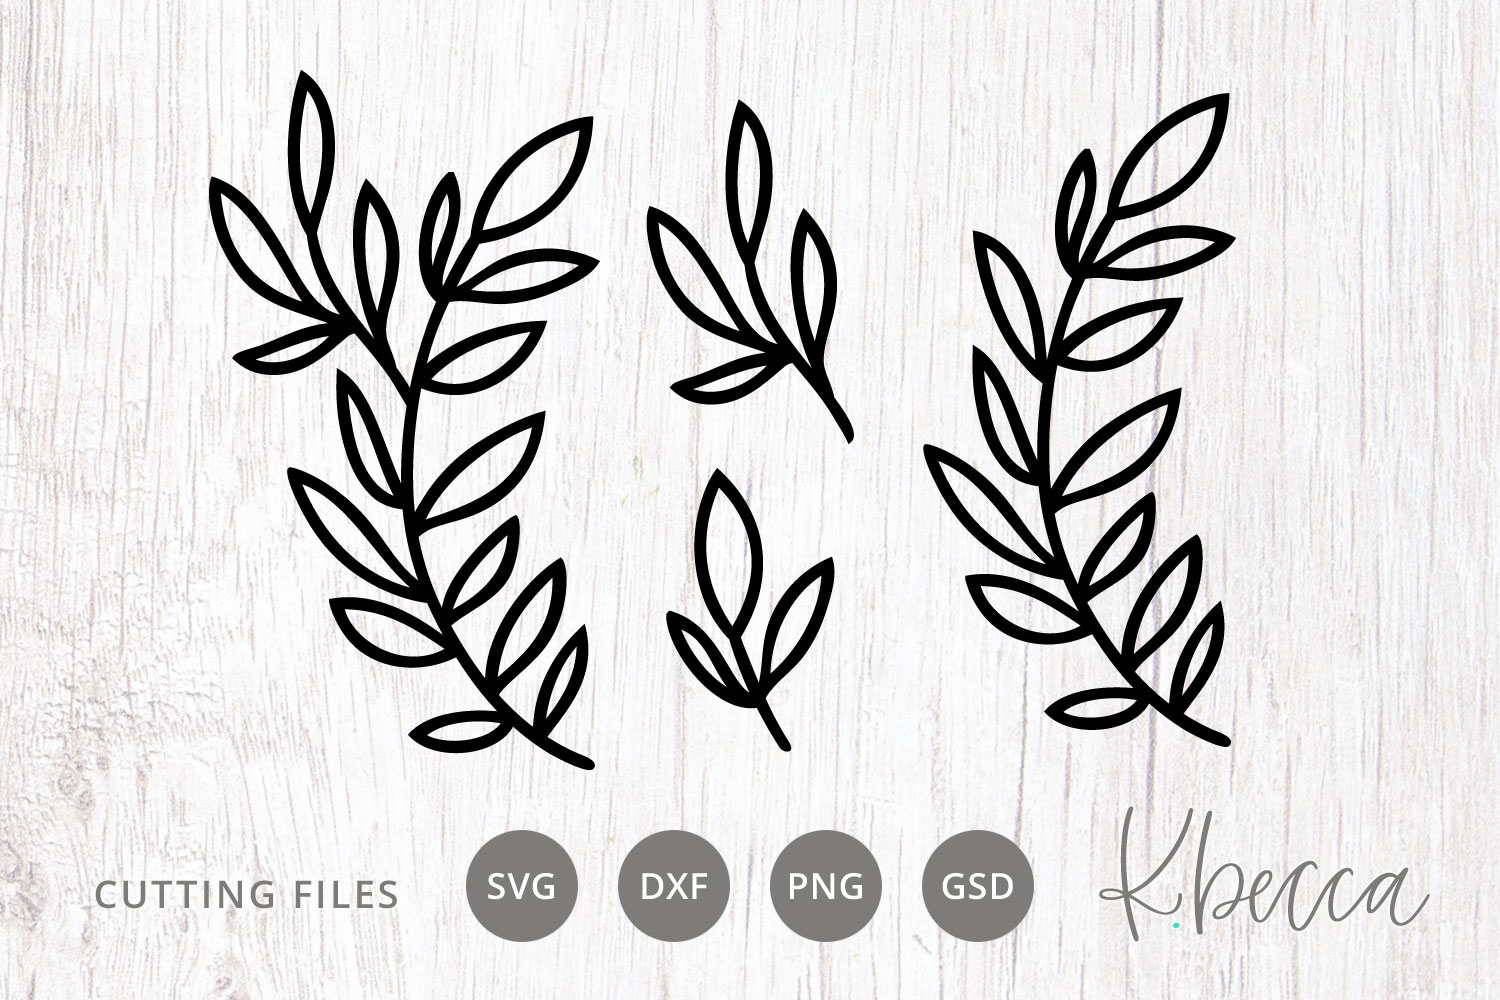 Leafy Branches Svg Cut Files